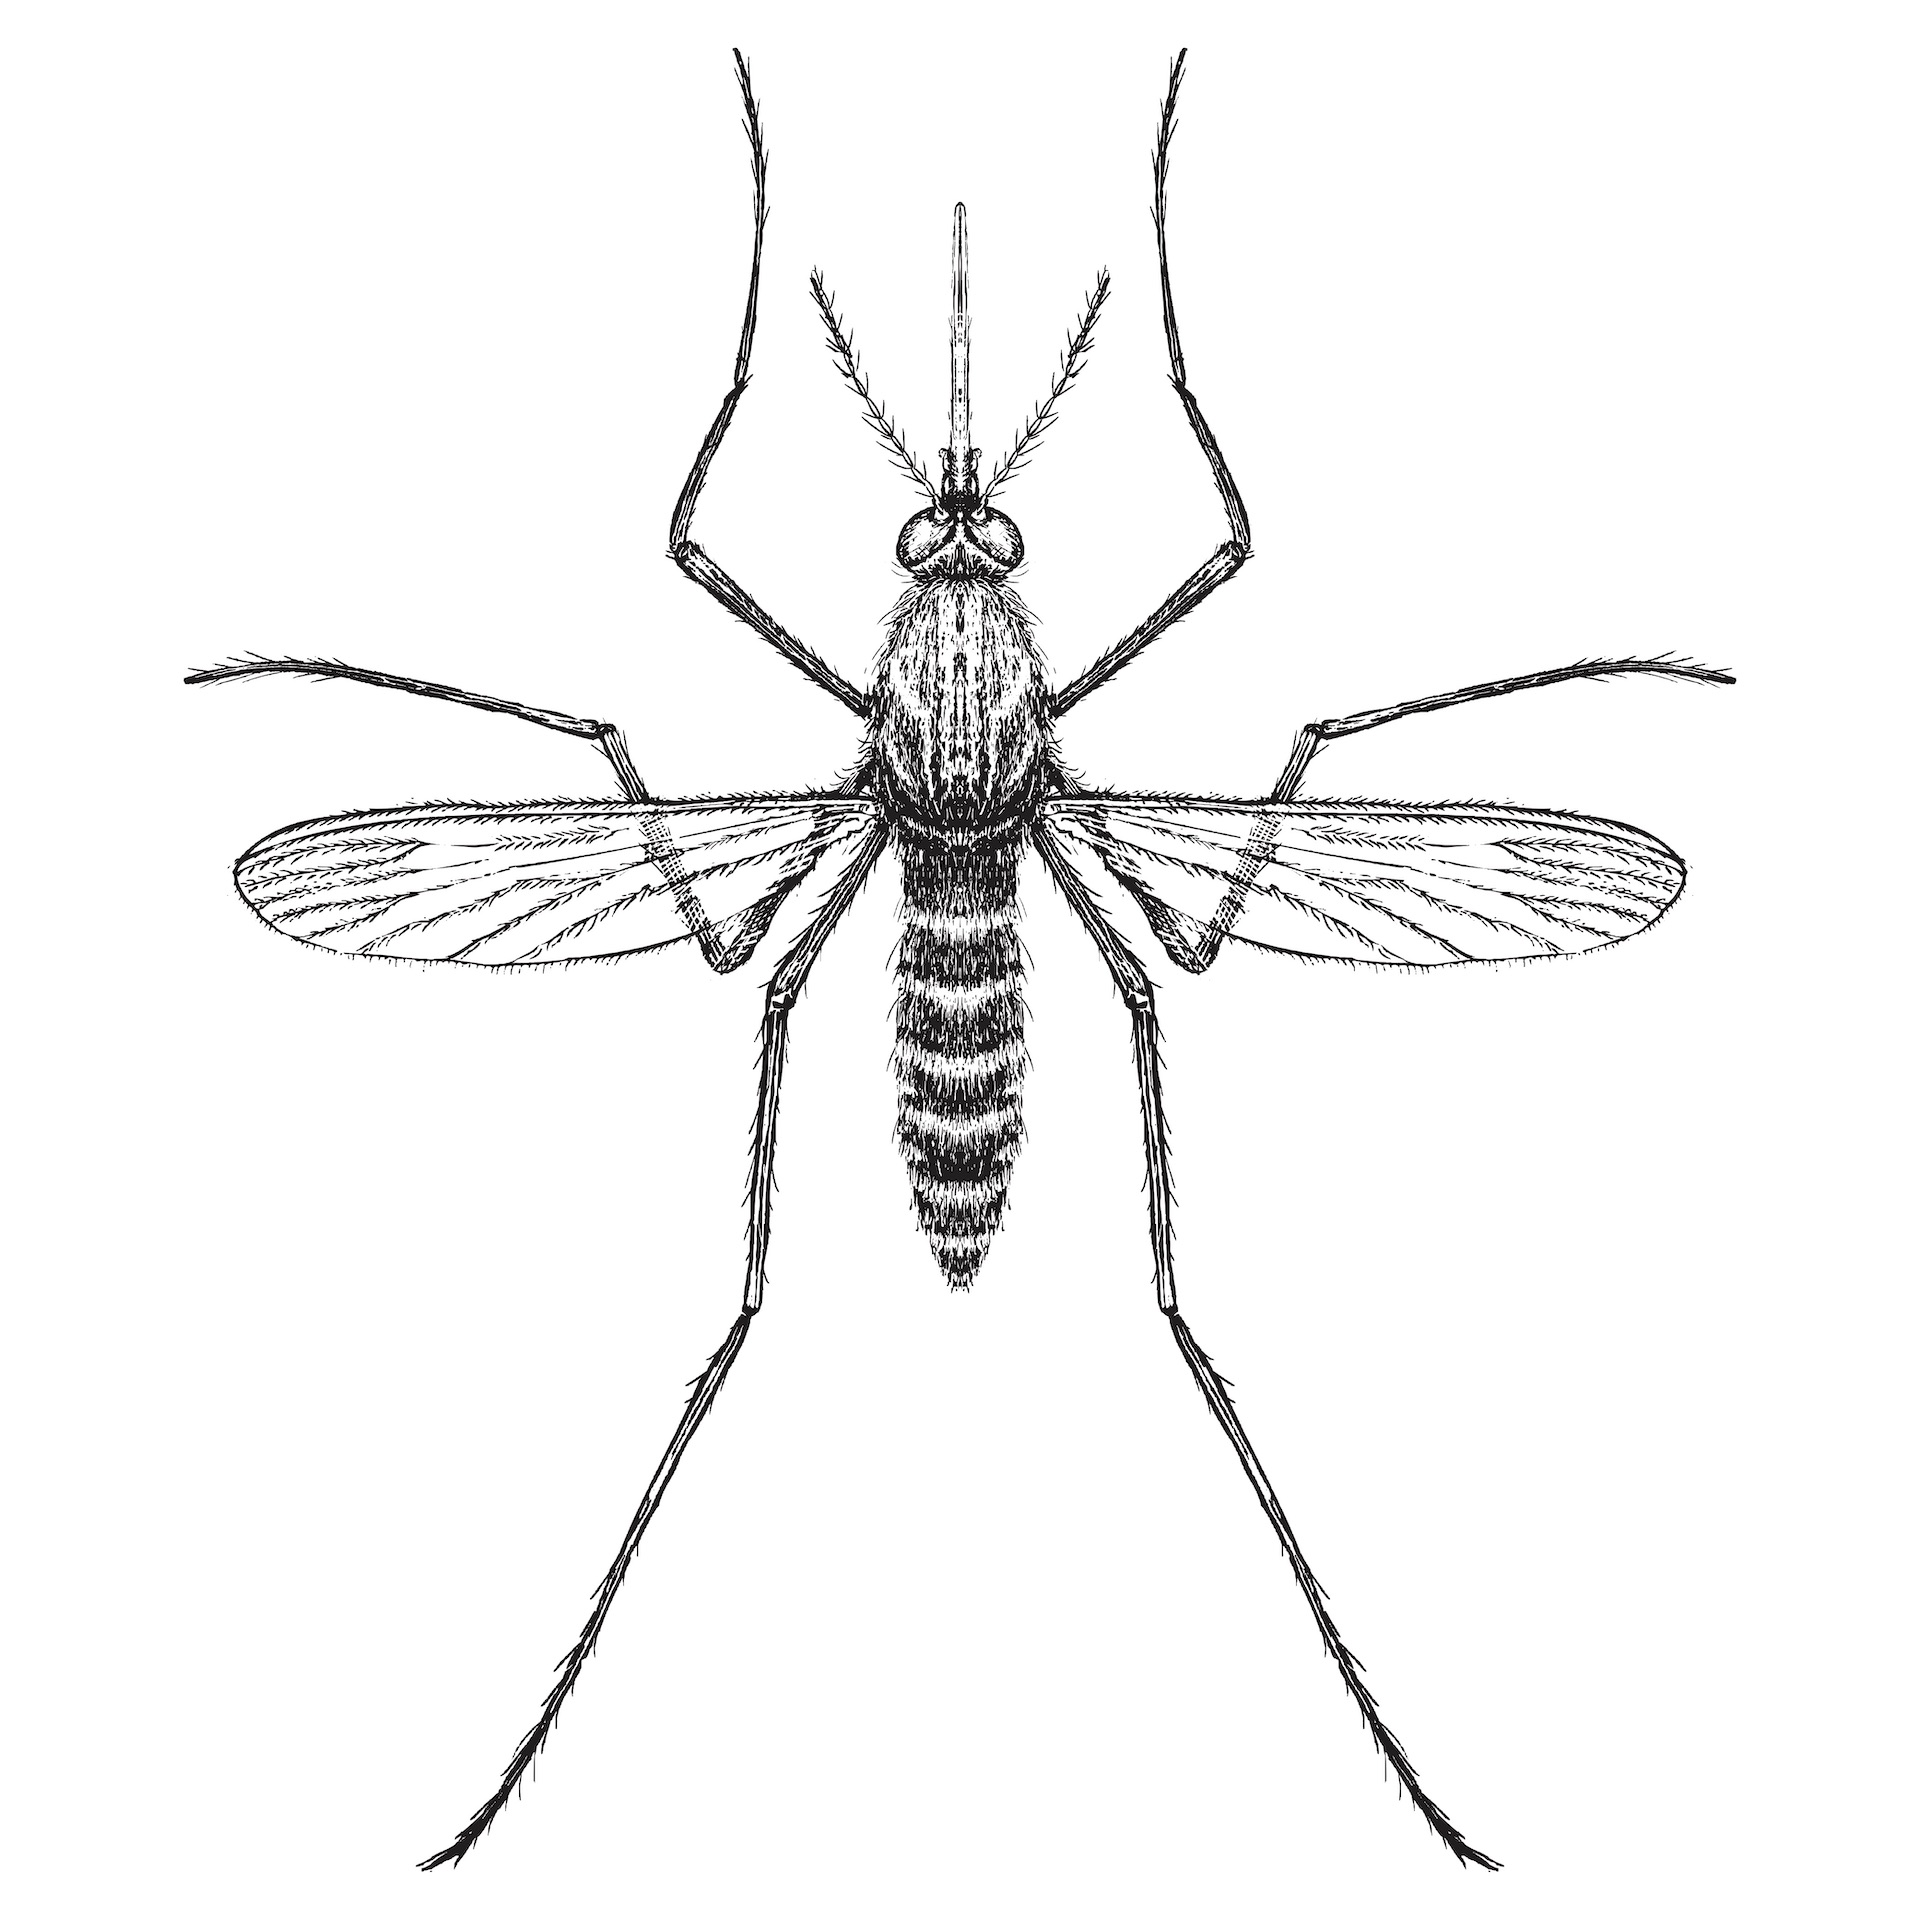 Mosquitoes are members of the fly family. The word mosquito is derived from the Spanish words mosca to mean little fly. Photo: IADA/Shutterstock